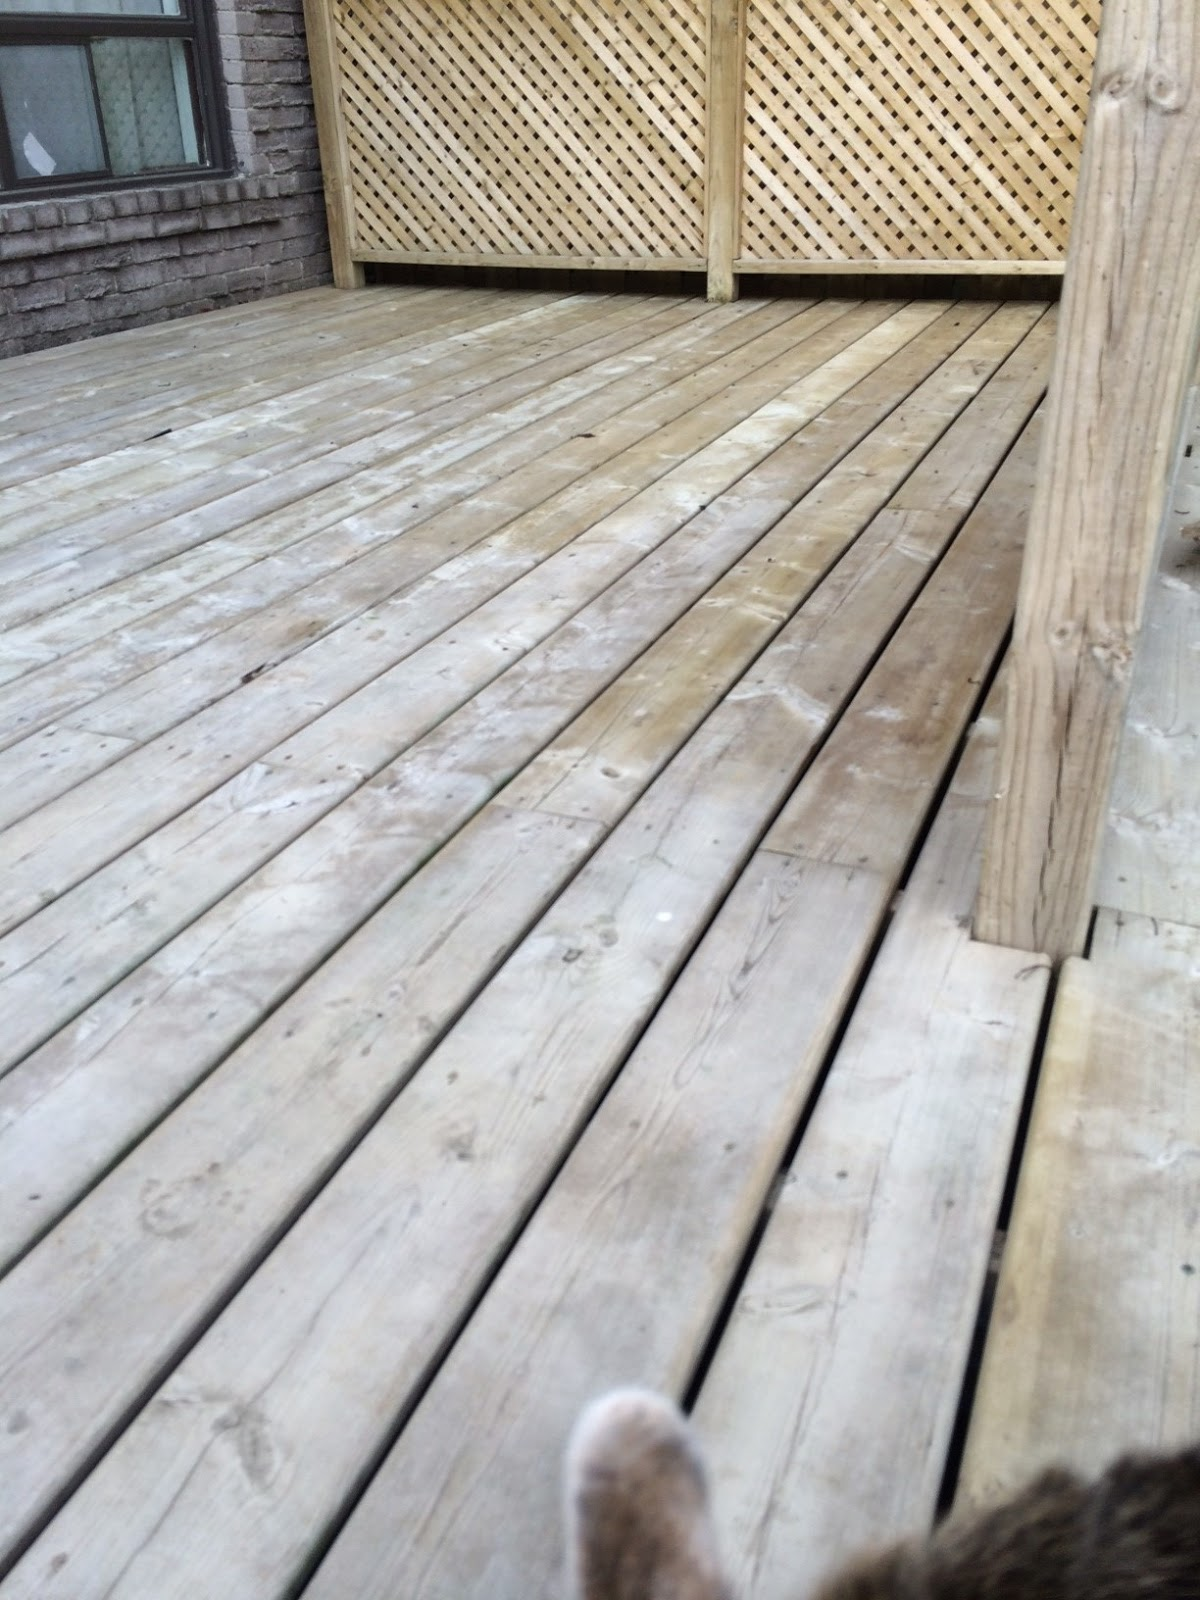 Erin mills paint decor centre inc home - After Another Shot Of My Clean Deck That Ear You See That S My Dog Inspecting My Work